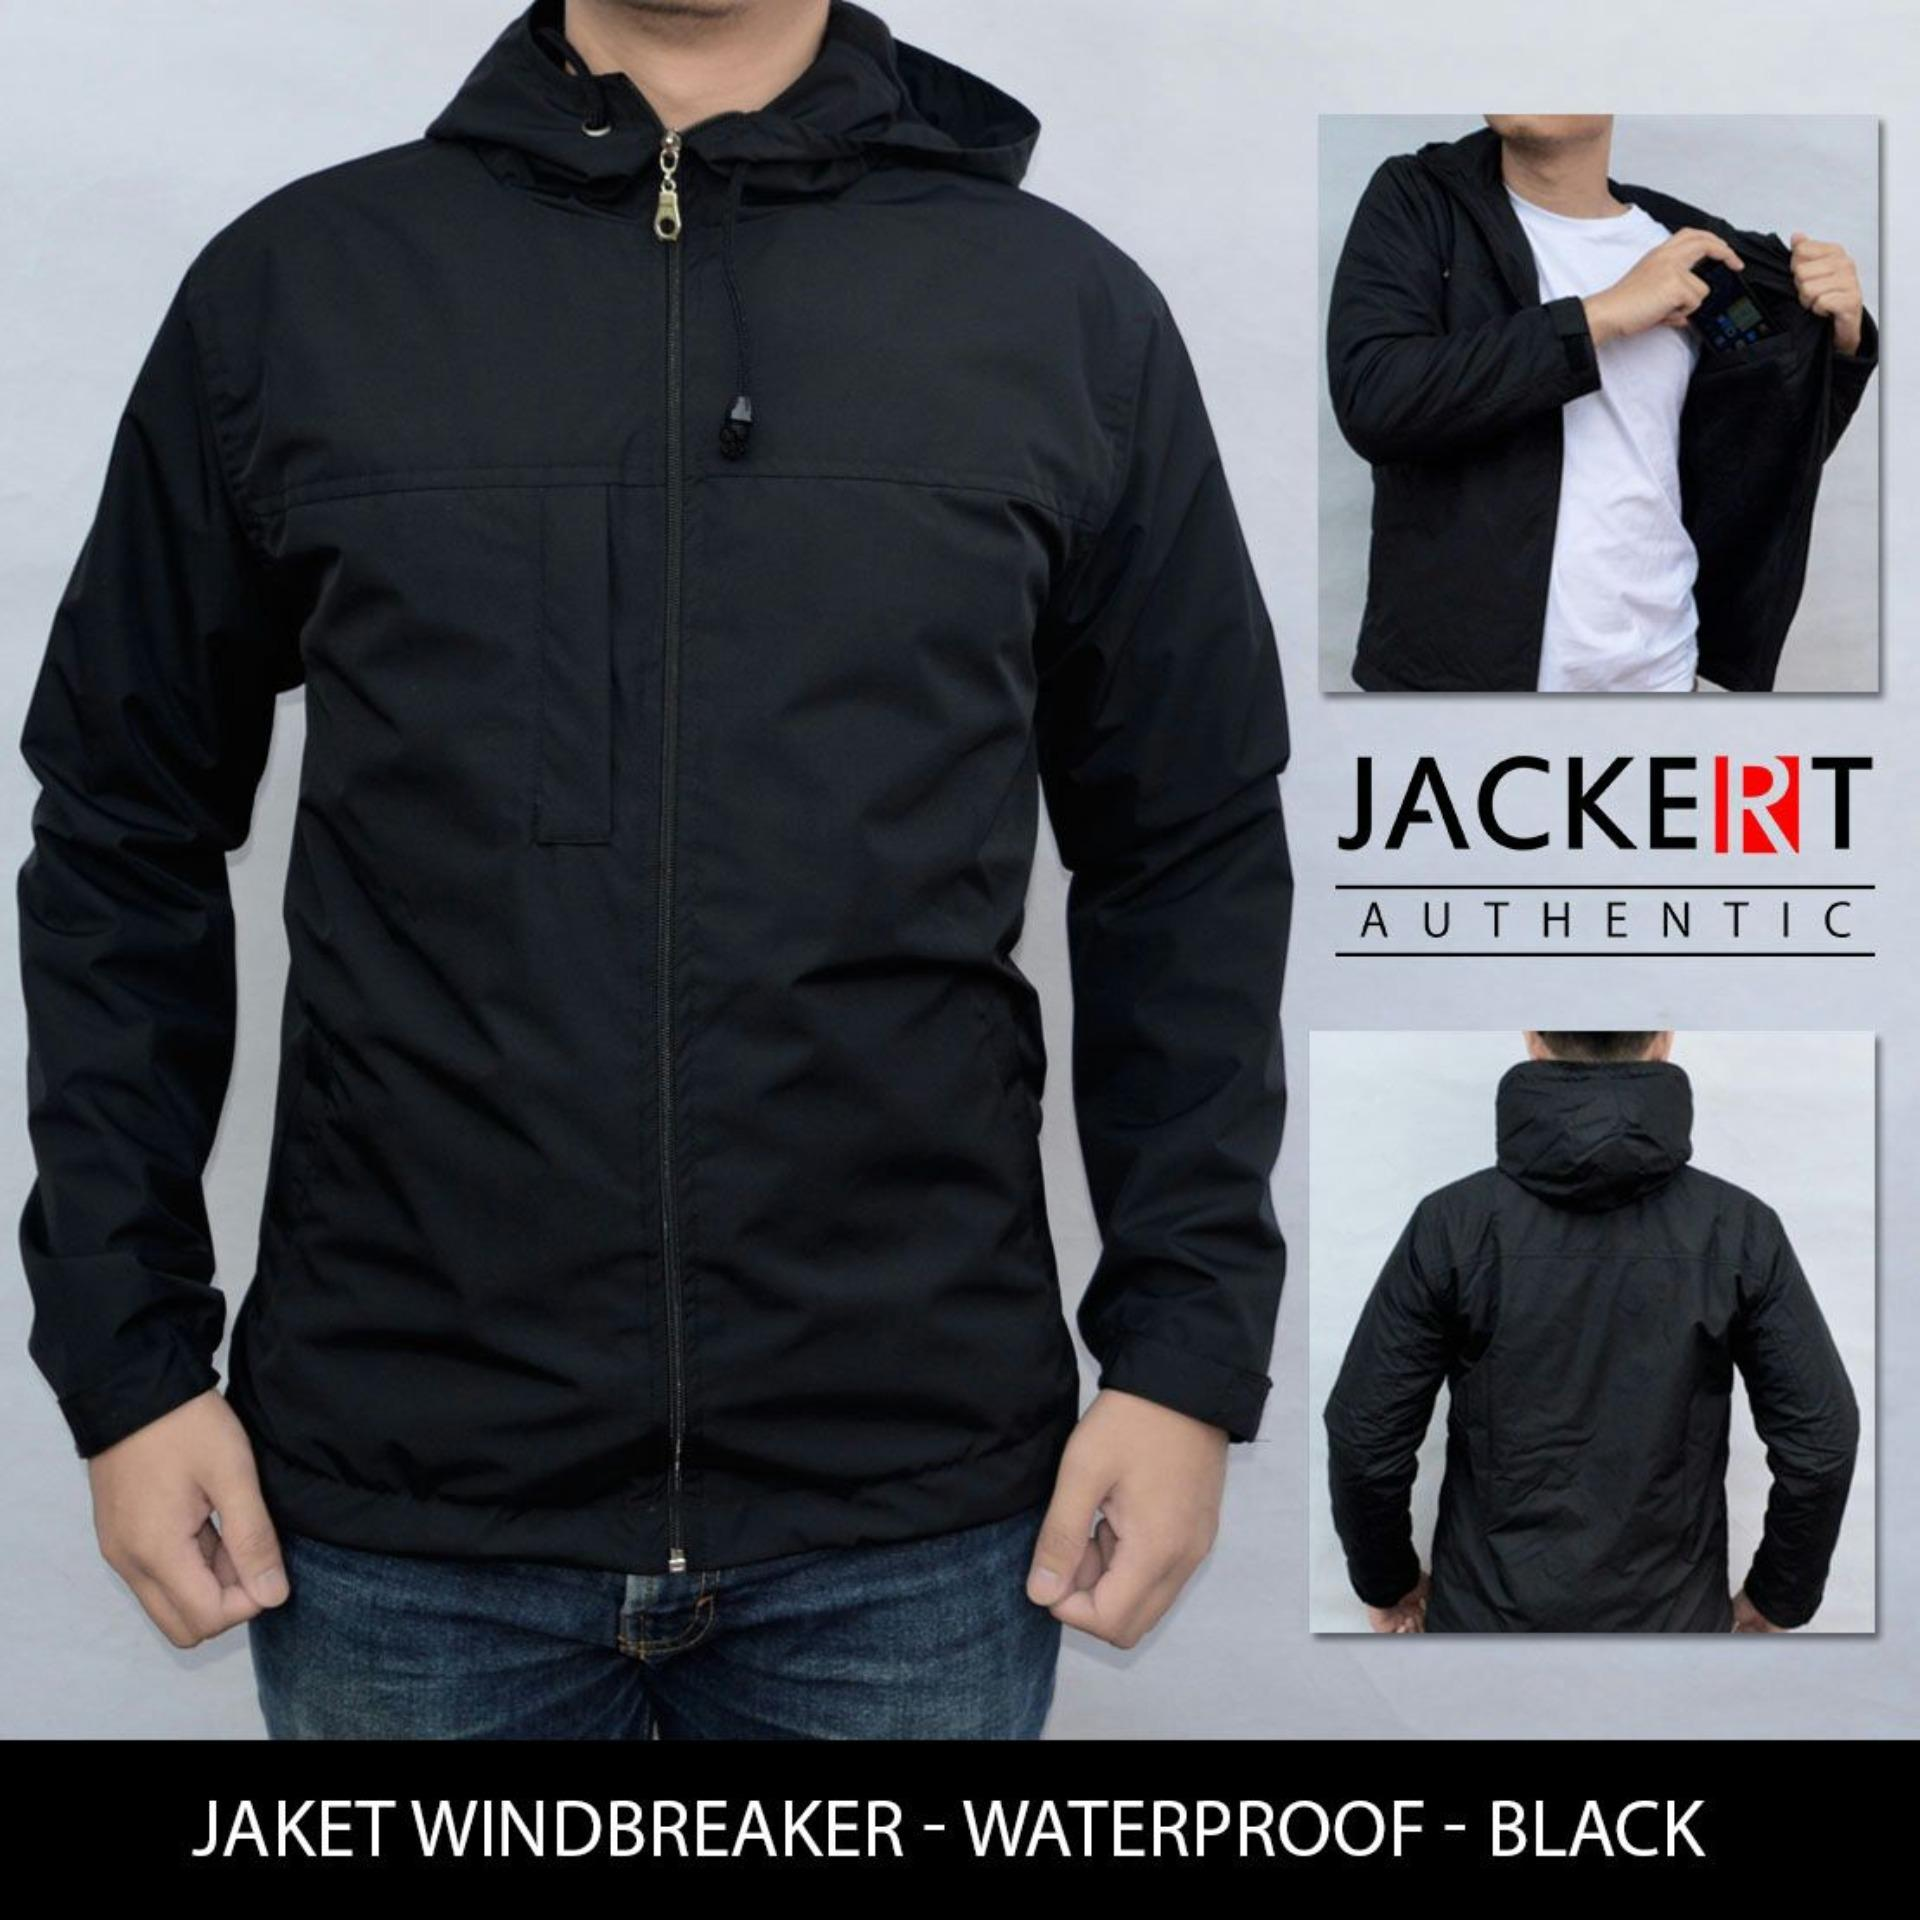 Situs Review Jaket Motor Harian Model Simple Polos Hitam Waterproof Semi Outdoor